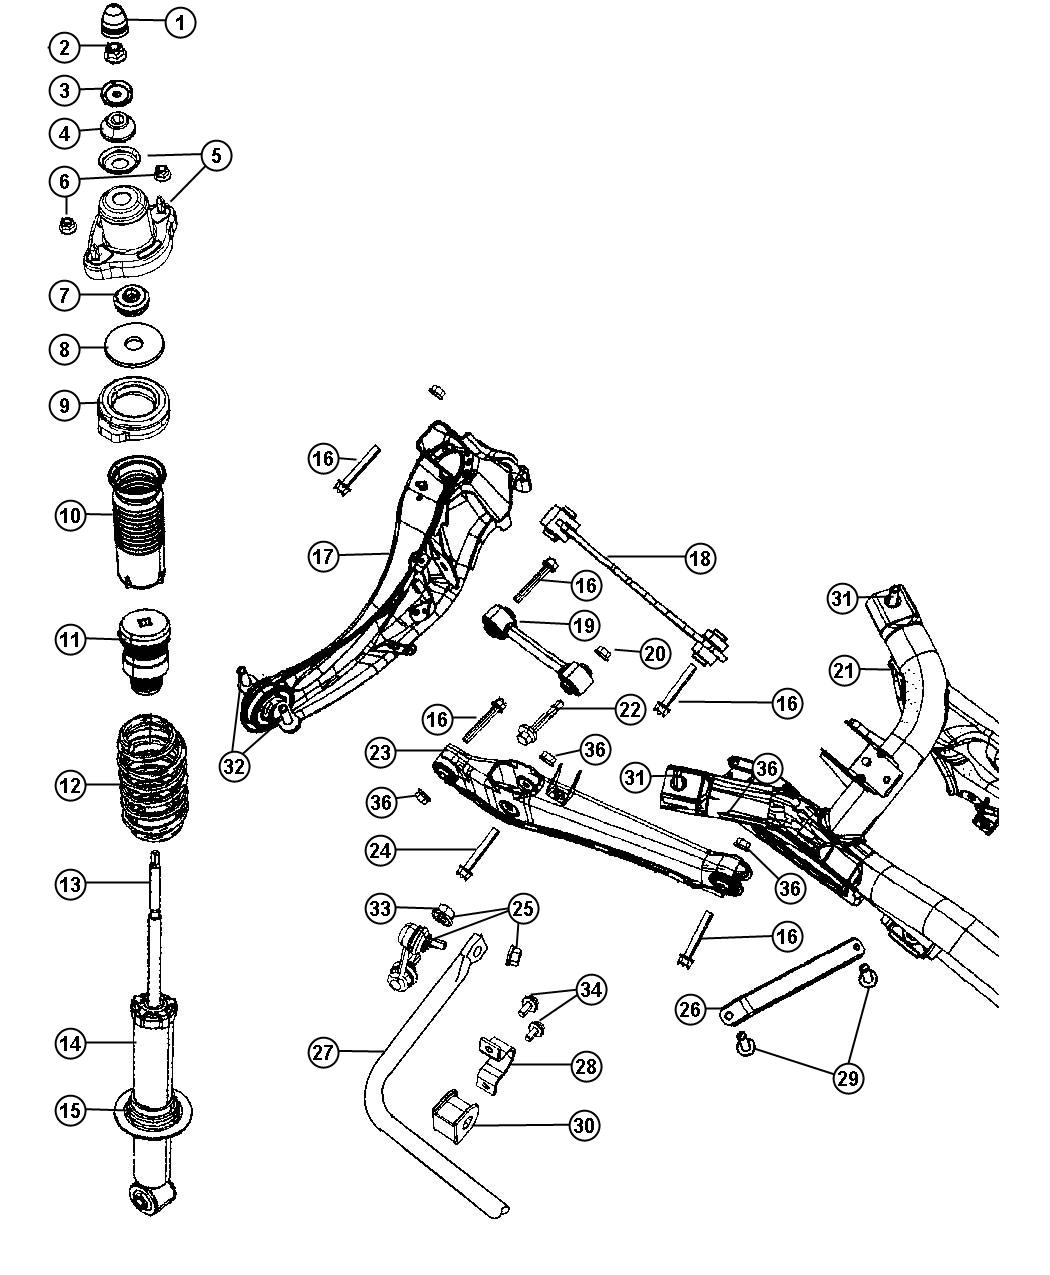 2007 dodge ram 1500 front suspension diagram